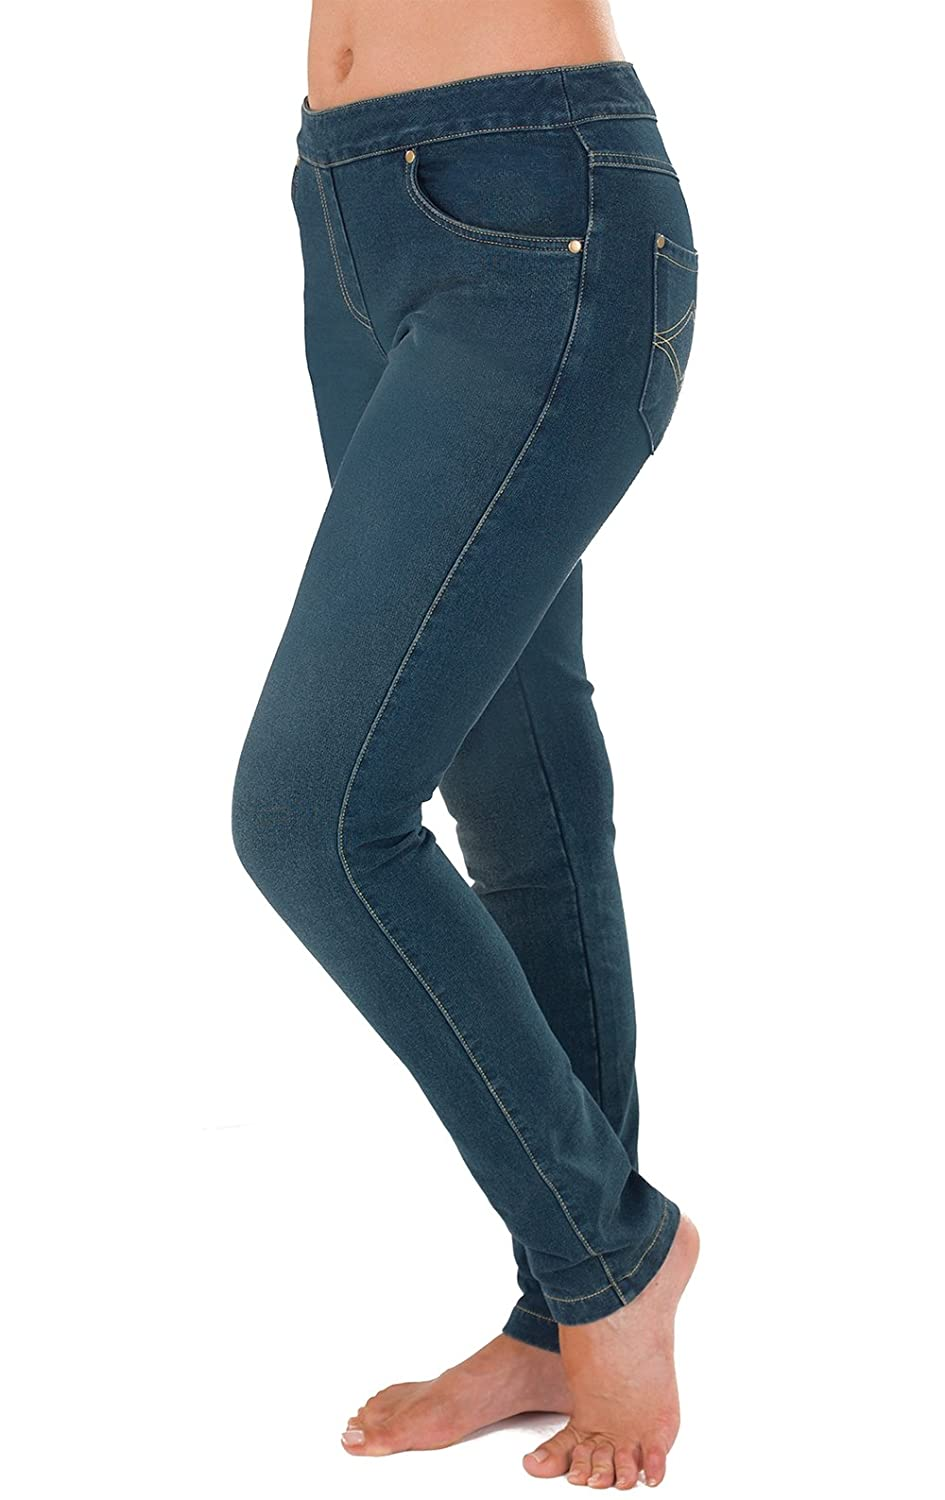 f0145915cf857 best PajamaJeans Women's Skinny Stretch Knit Denim Jeans in Antique Blue  Wash G03329